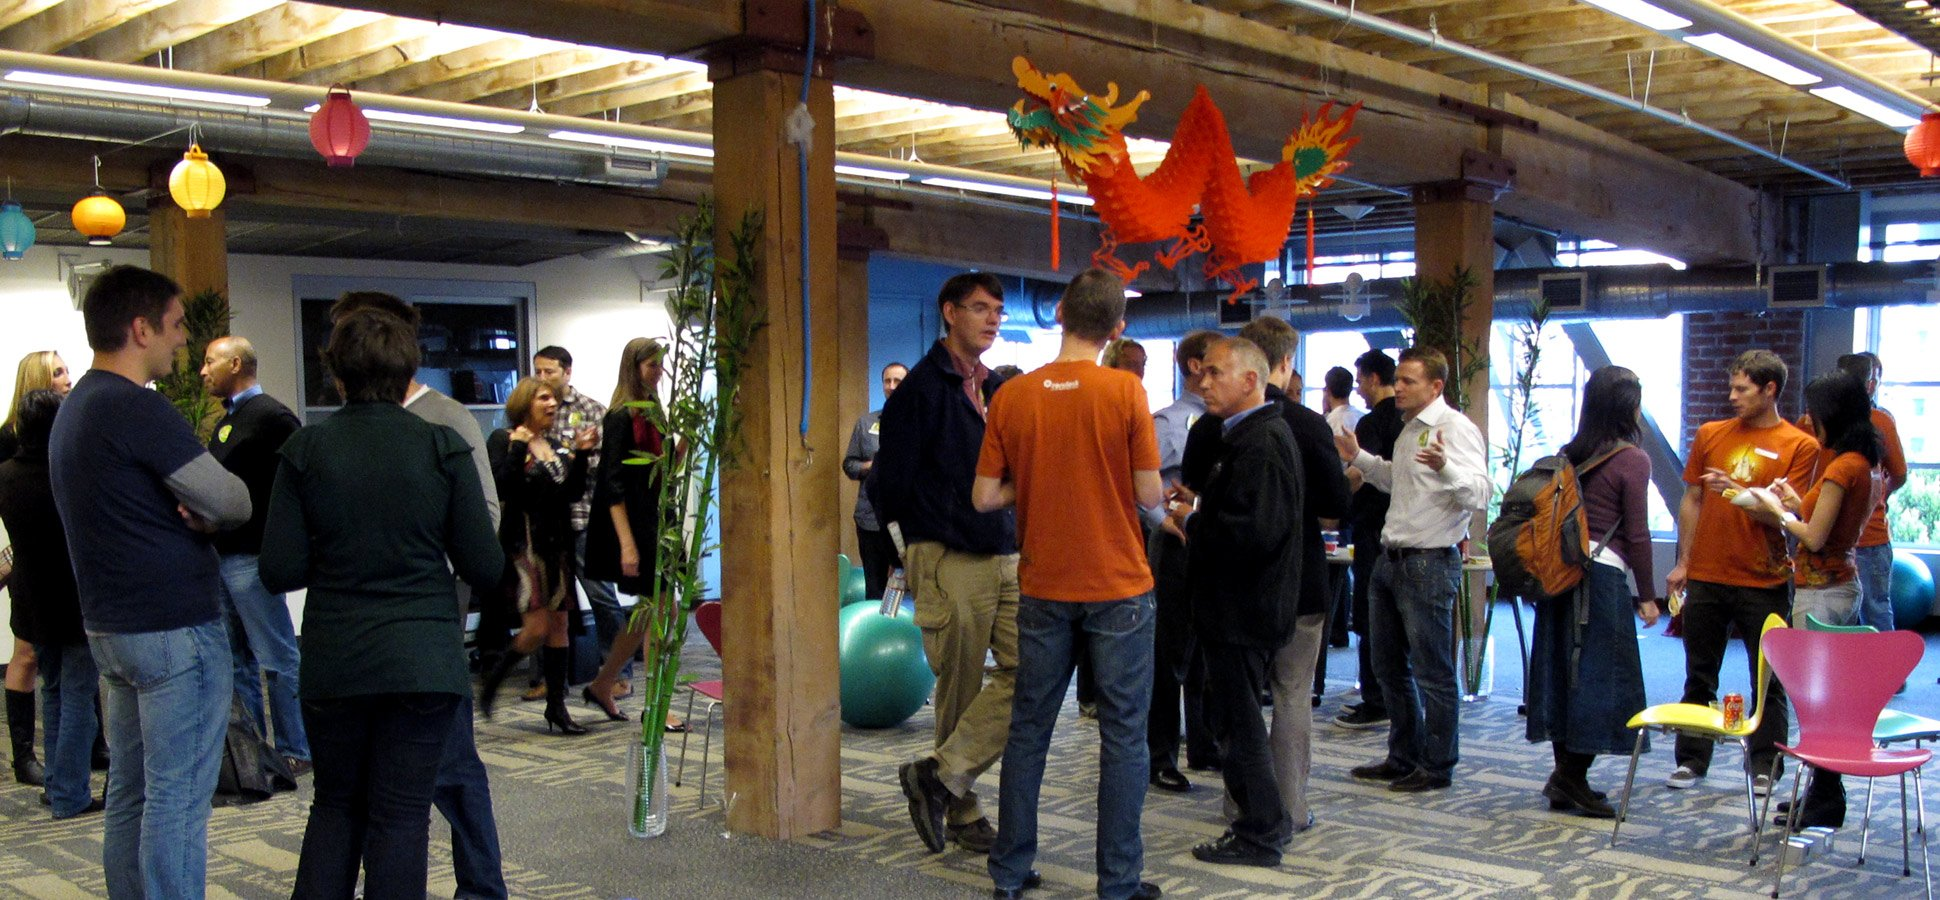 7 WAYS YOUR MATURING COMPANY CAN MAINTAIN A STARTUP CULTURE    January 27, 2014